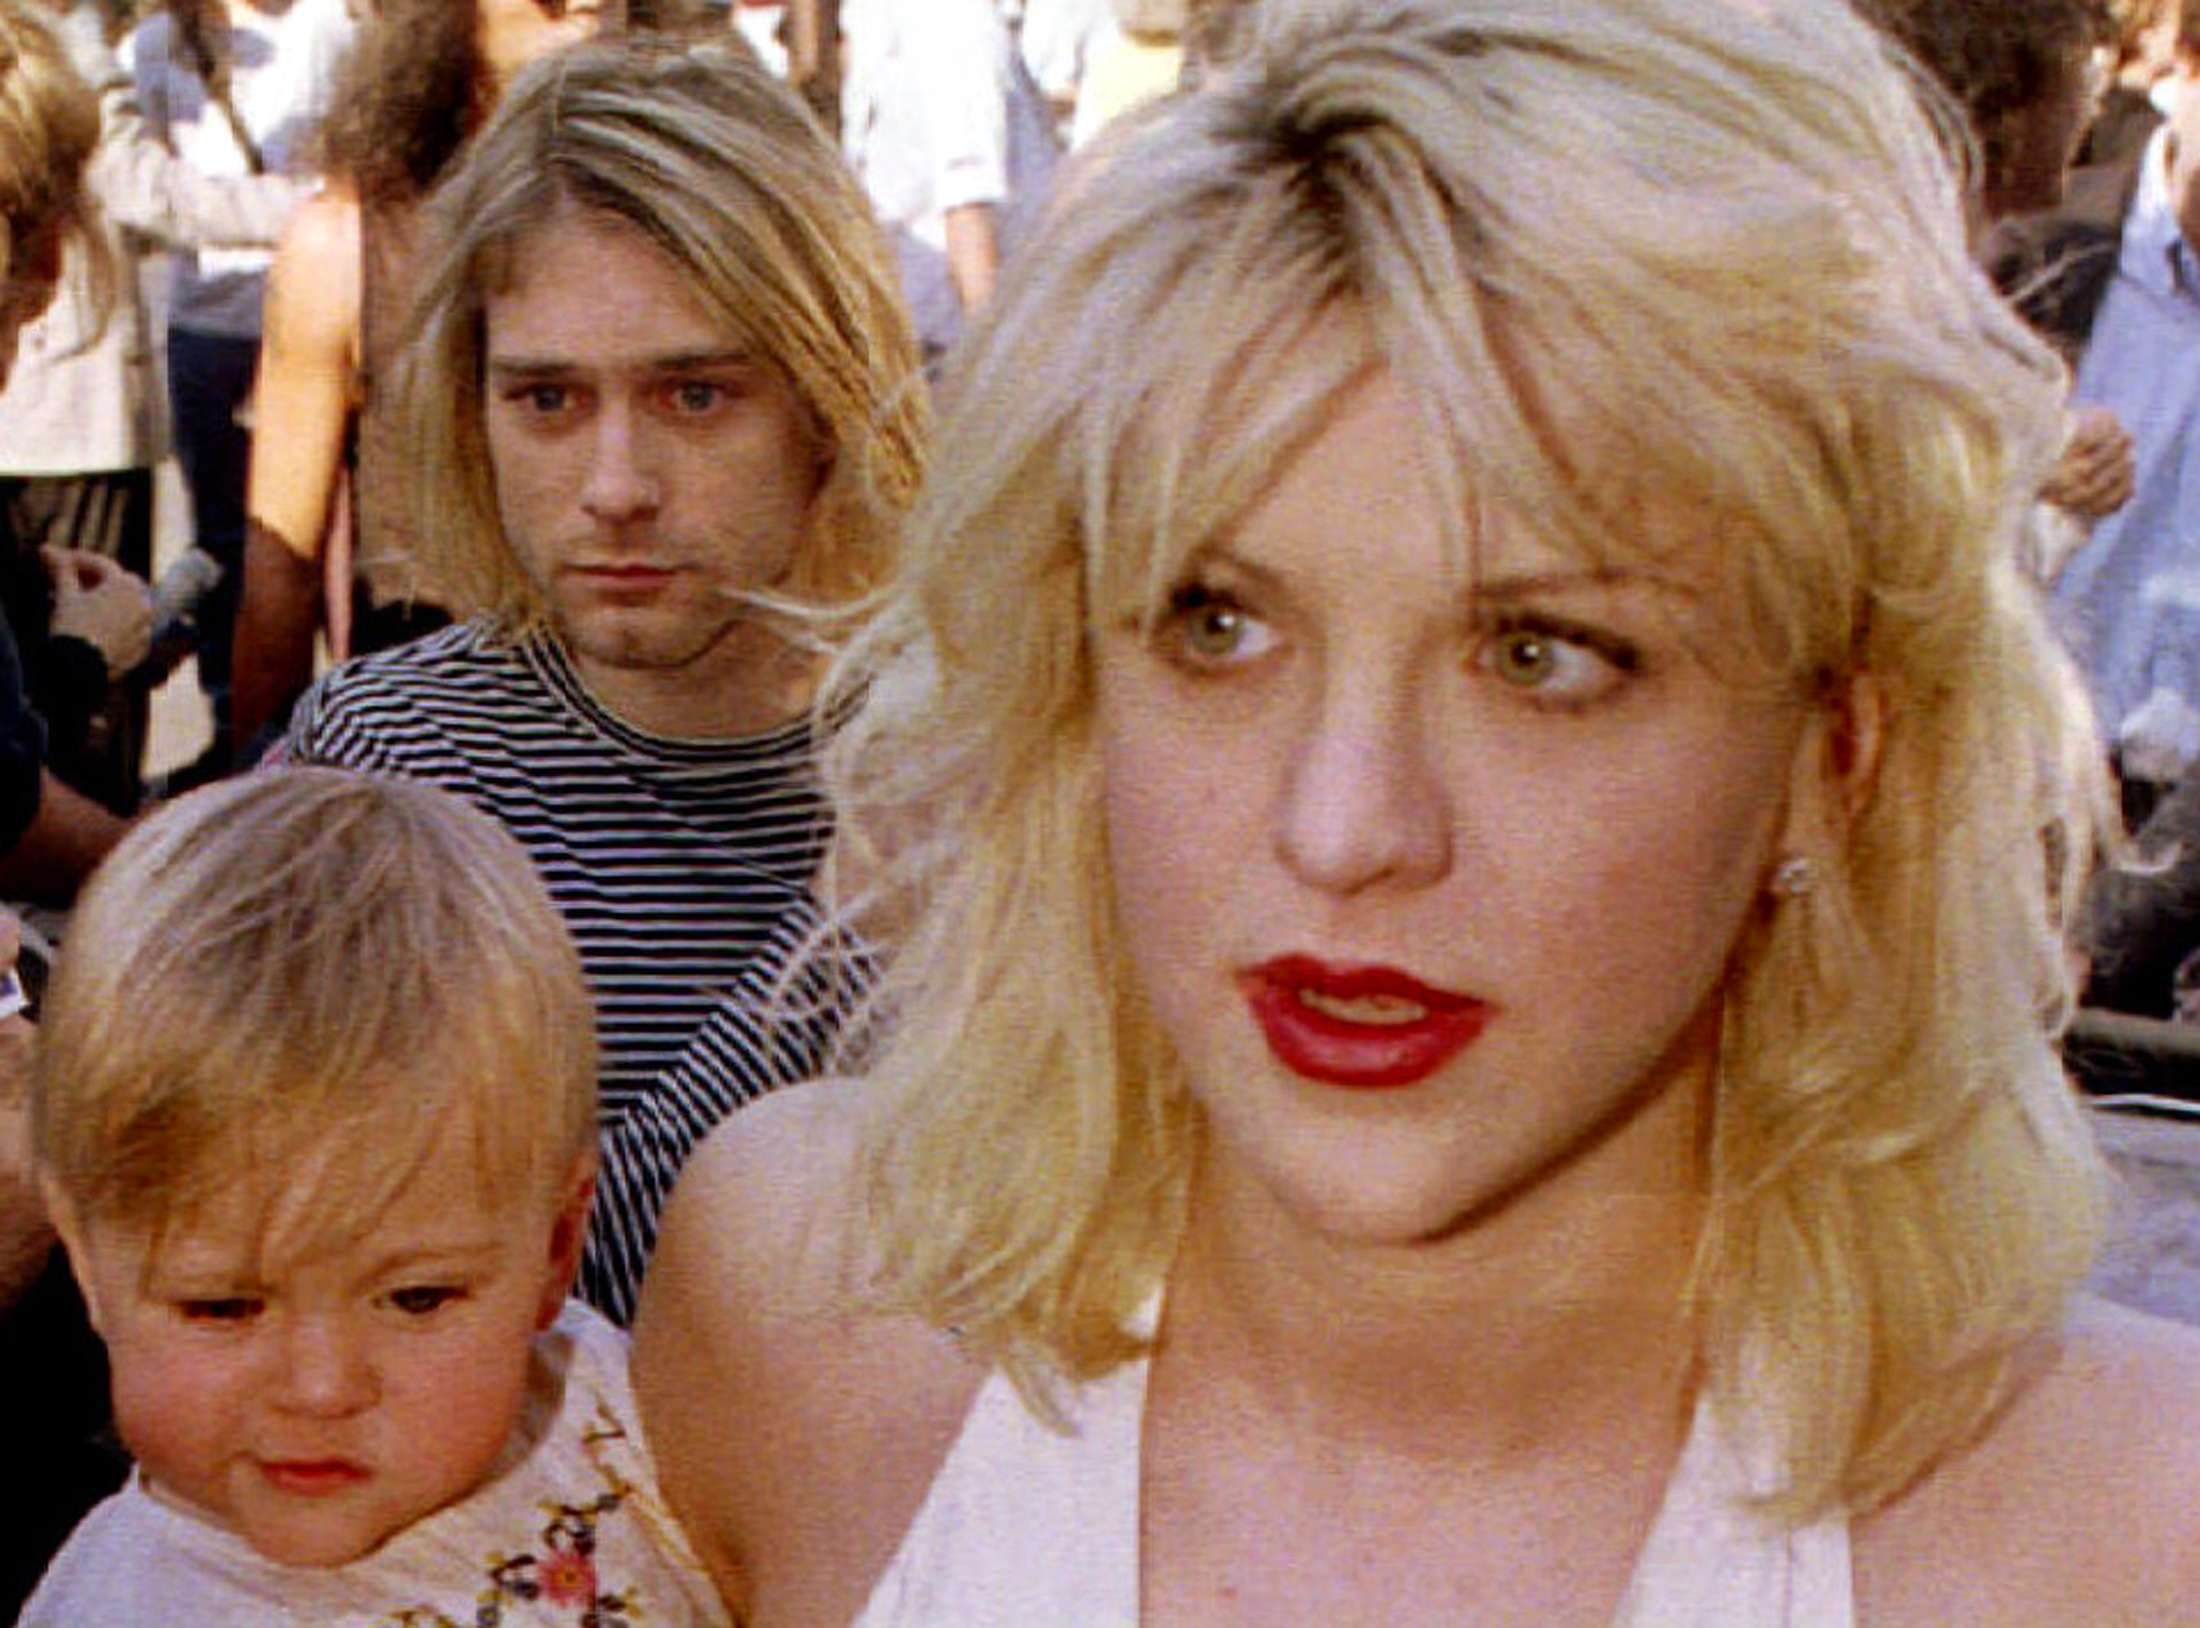 Kurt Cobain arrives with wife Courtney Love, holding their daughter Frances Bean Cobain, for the MTV Music Awards show in Los Angeles in this September 9 1992, file photo. A cold case investigator has found several rolls of undeveloped film from the scene of Nirvana singer Kurt Cobain's 1994 death, but Seattle police said on March 20, 2014 they do not expect the discovery will alter a finding that he committed suicide. REUTERS/Fred Prouser/Files (UNITED STATES) Foto: FRED PROUSER/REUTERS